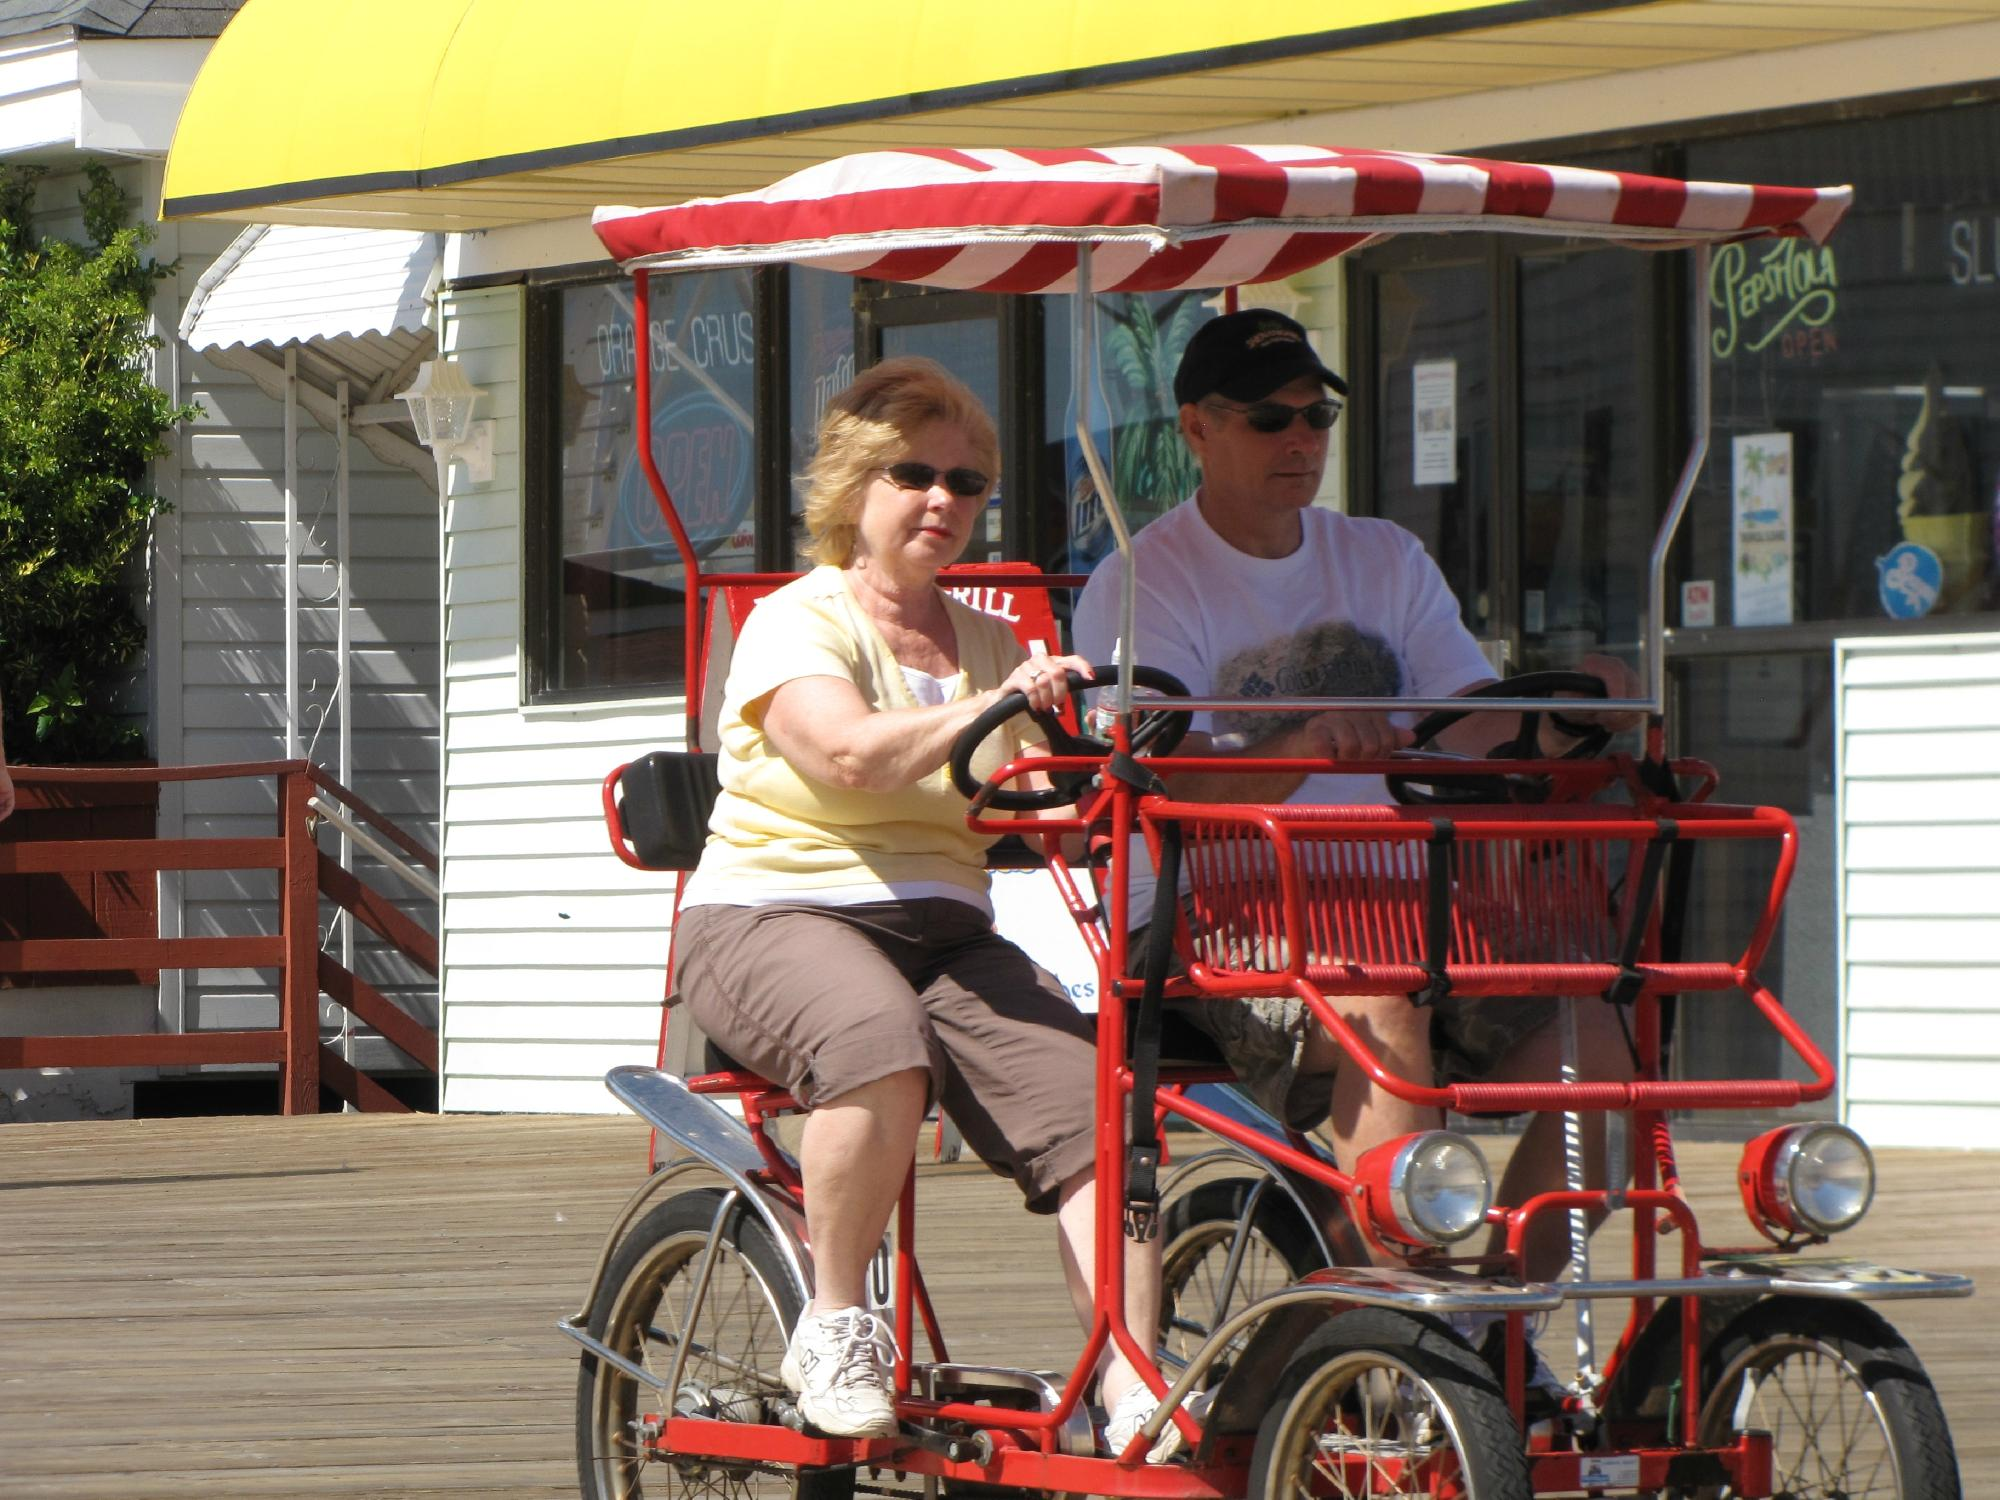 Renting a bike or surrey on the boardwalk is a must!